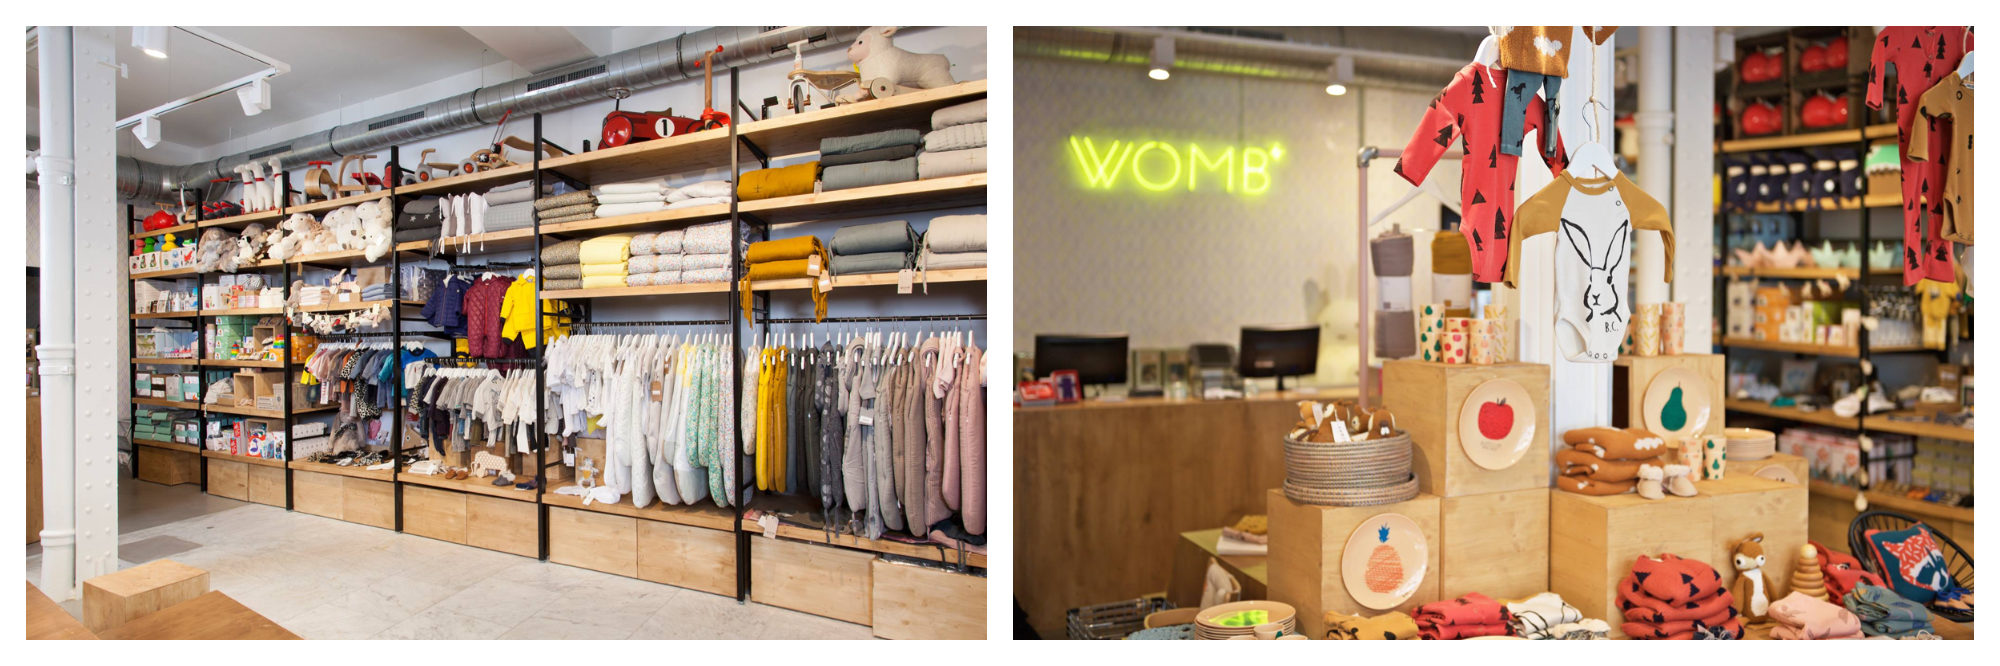 Clothing rails and shelves at Paris kids' store WOMB (left). A display of clothes at WOMB (right).